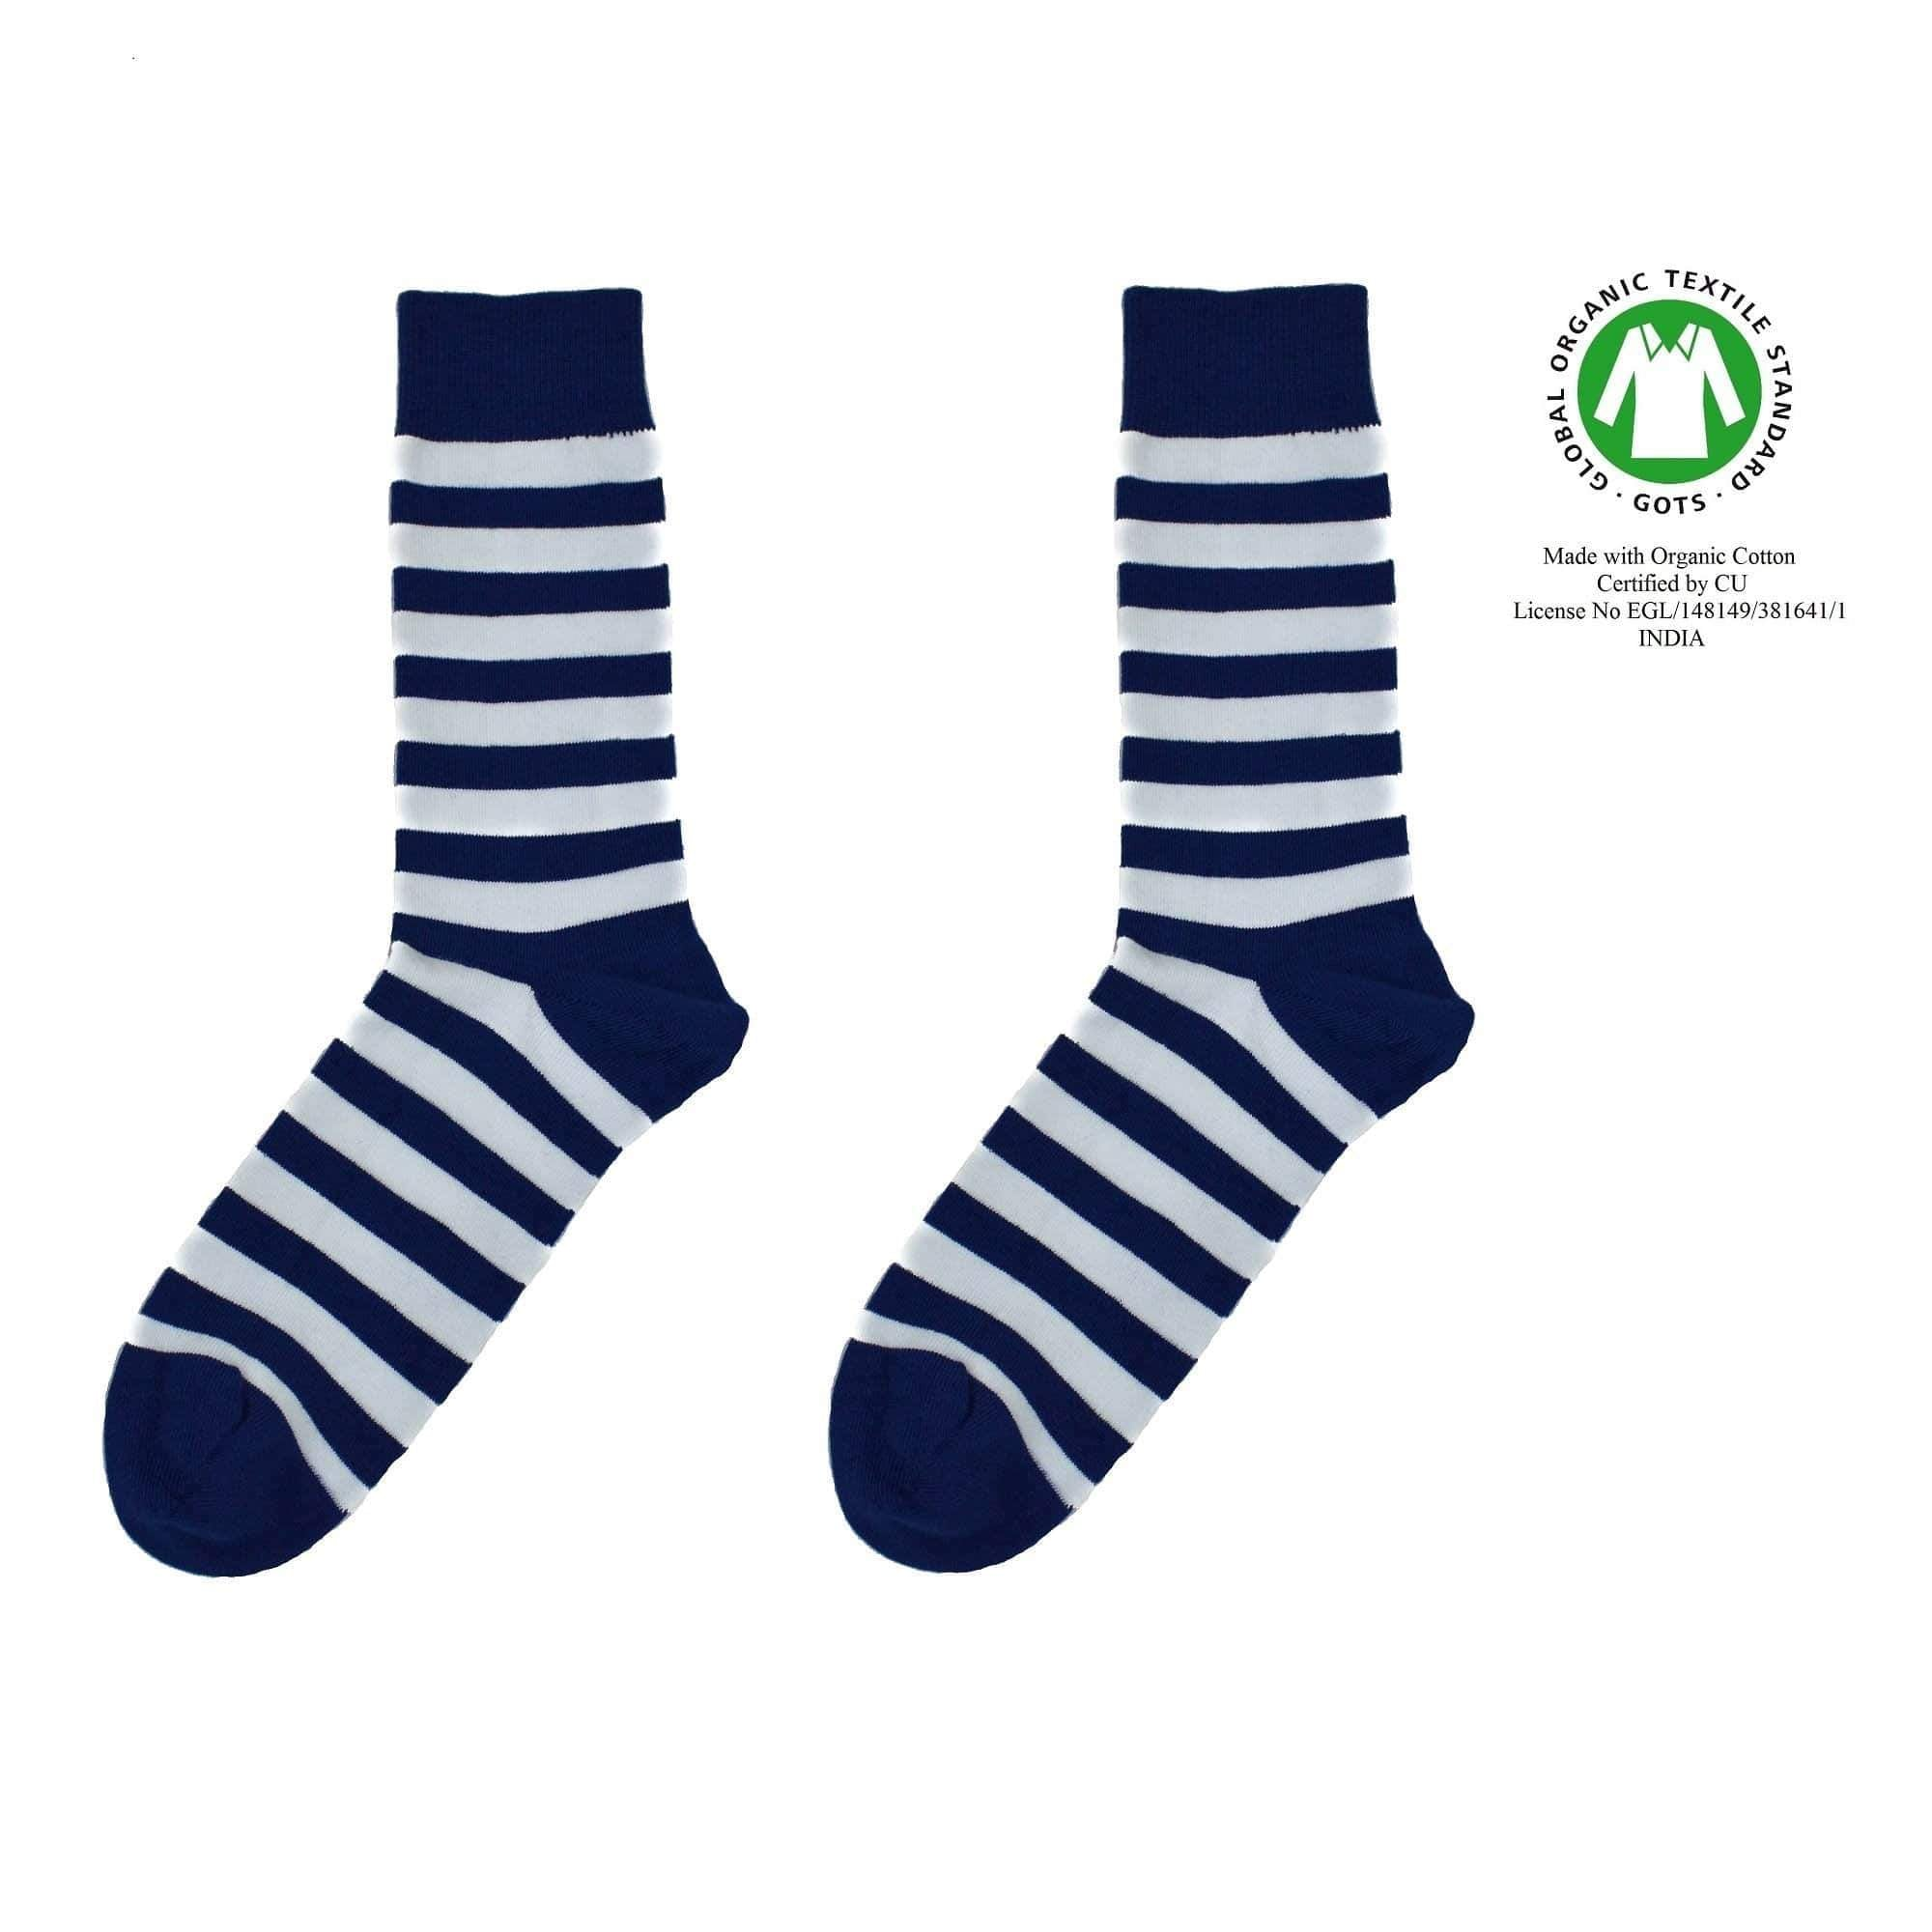 Organic Socks of Sweden sock Lundström Socks. Organic Cotton. sustainable fashion ethical fashion